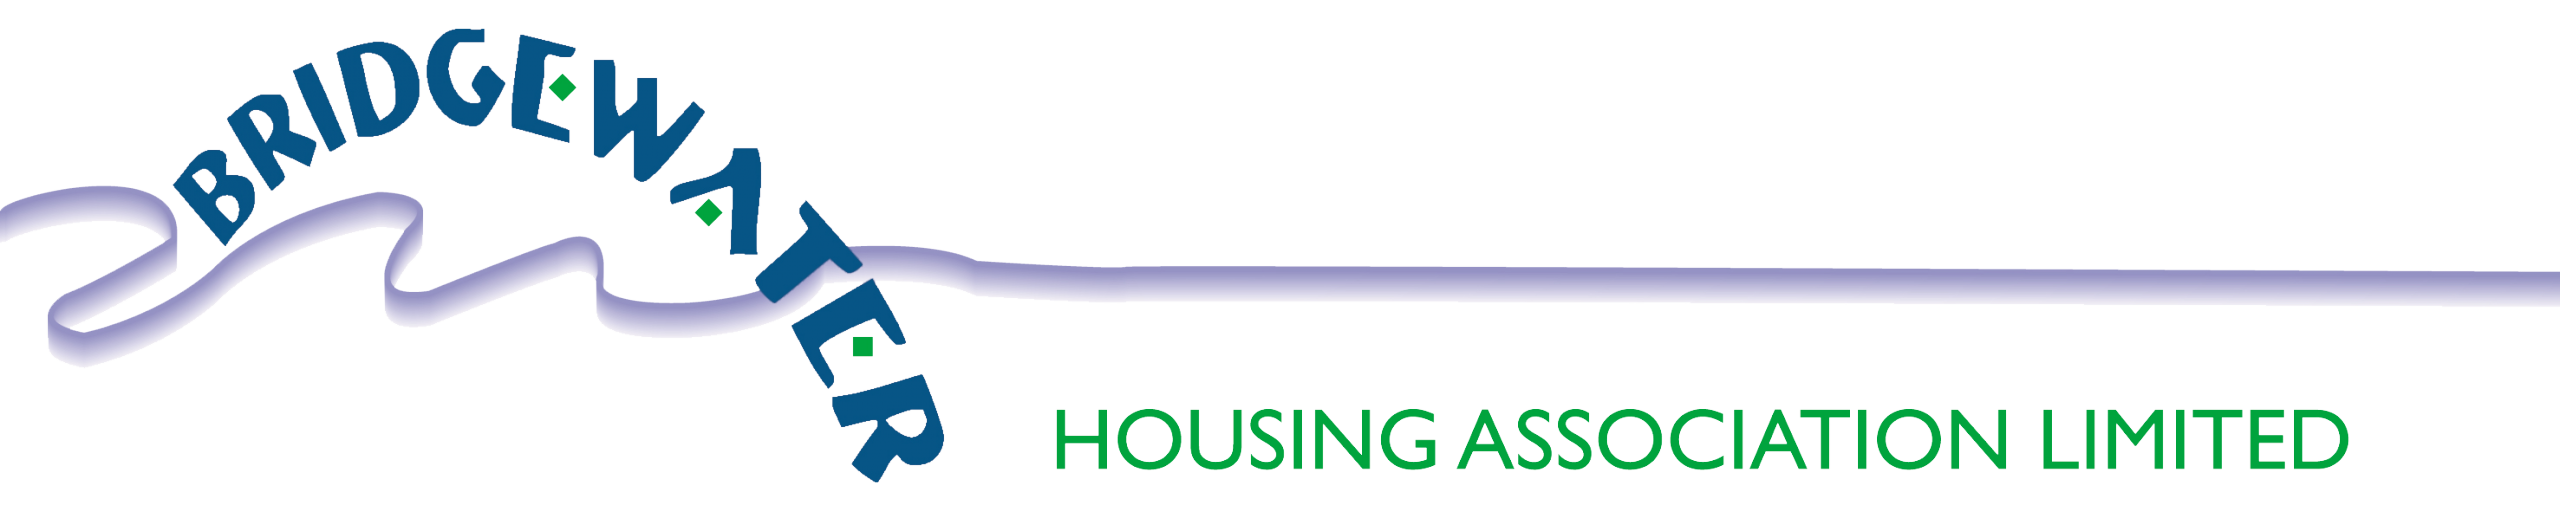 Bridgewater Housing Association